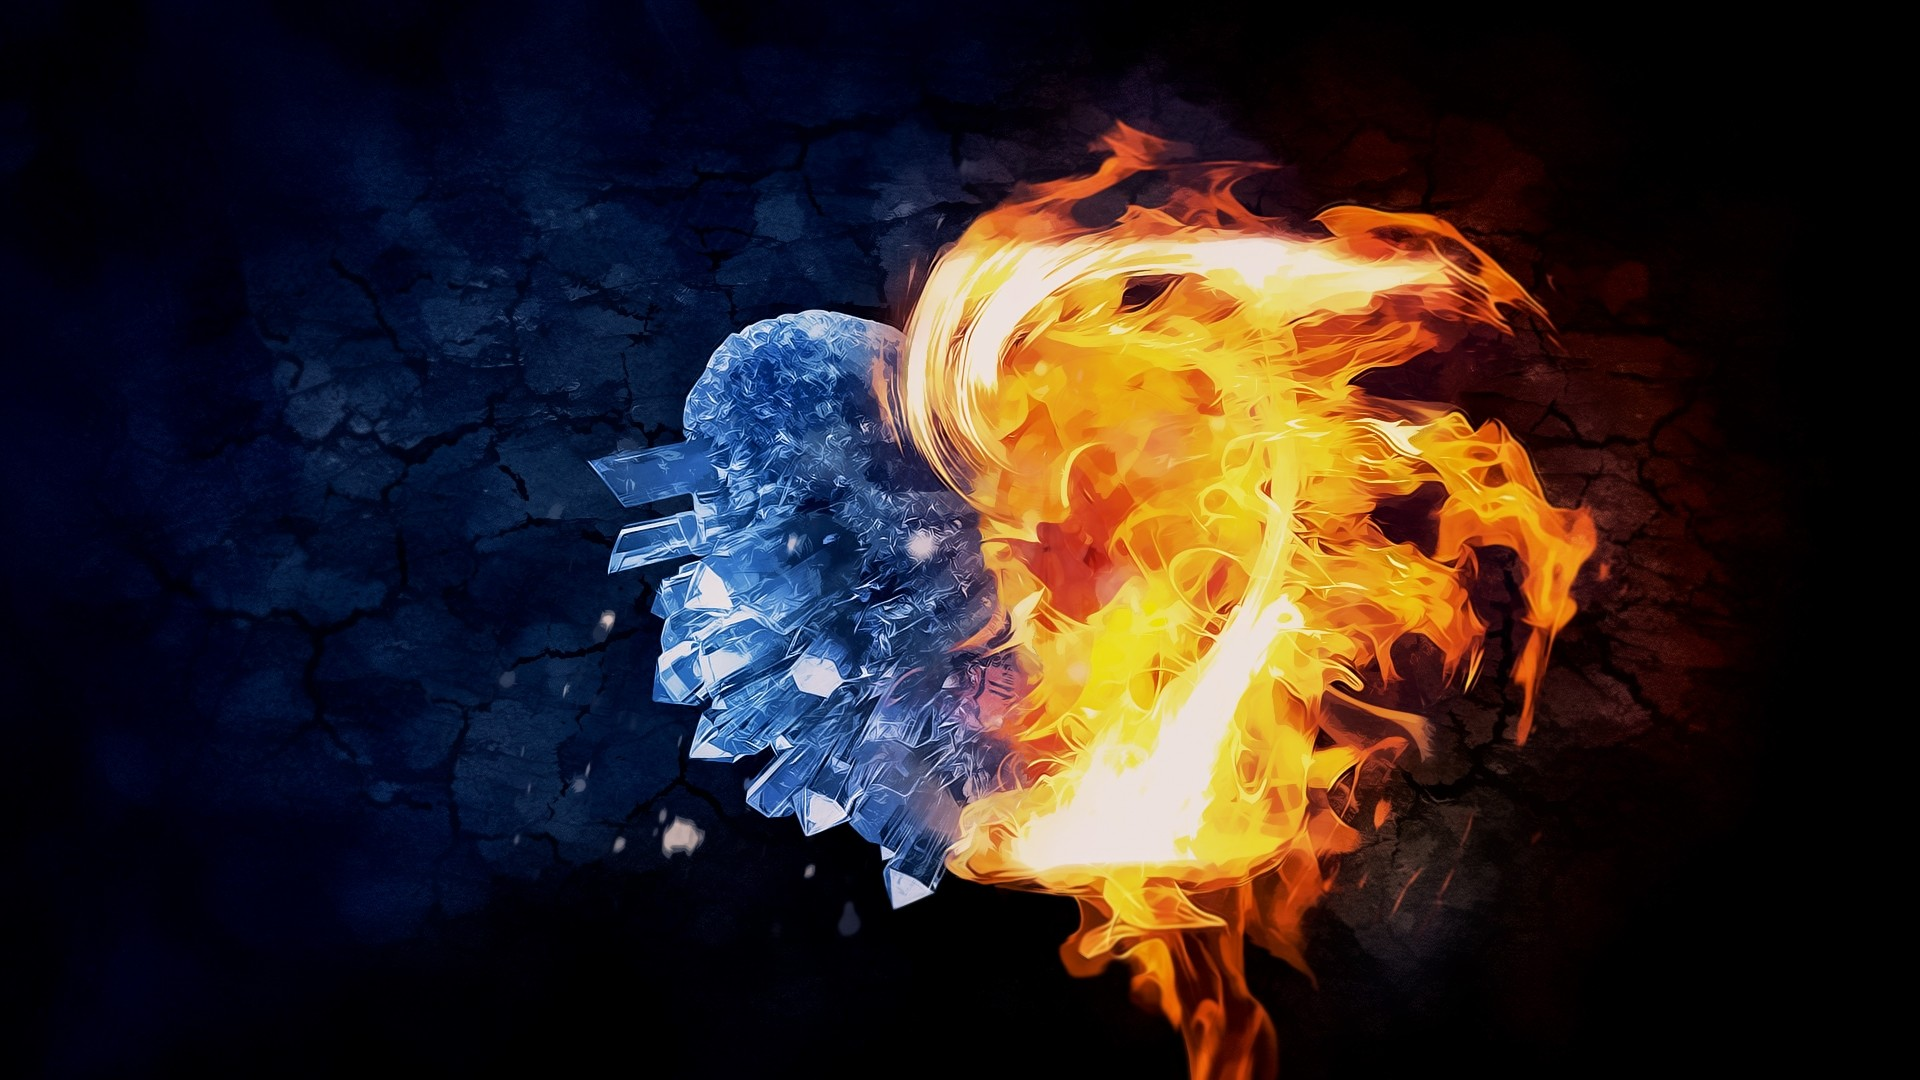 Fire And Ice a wallpaper